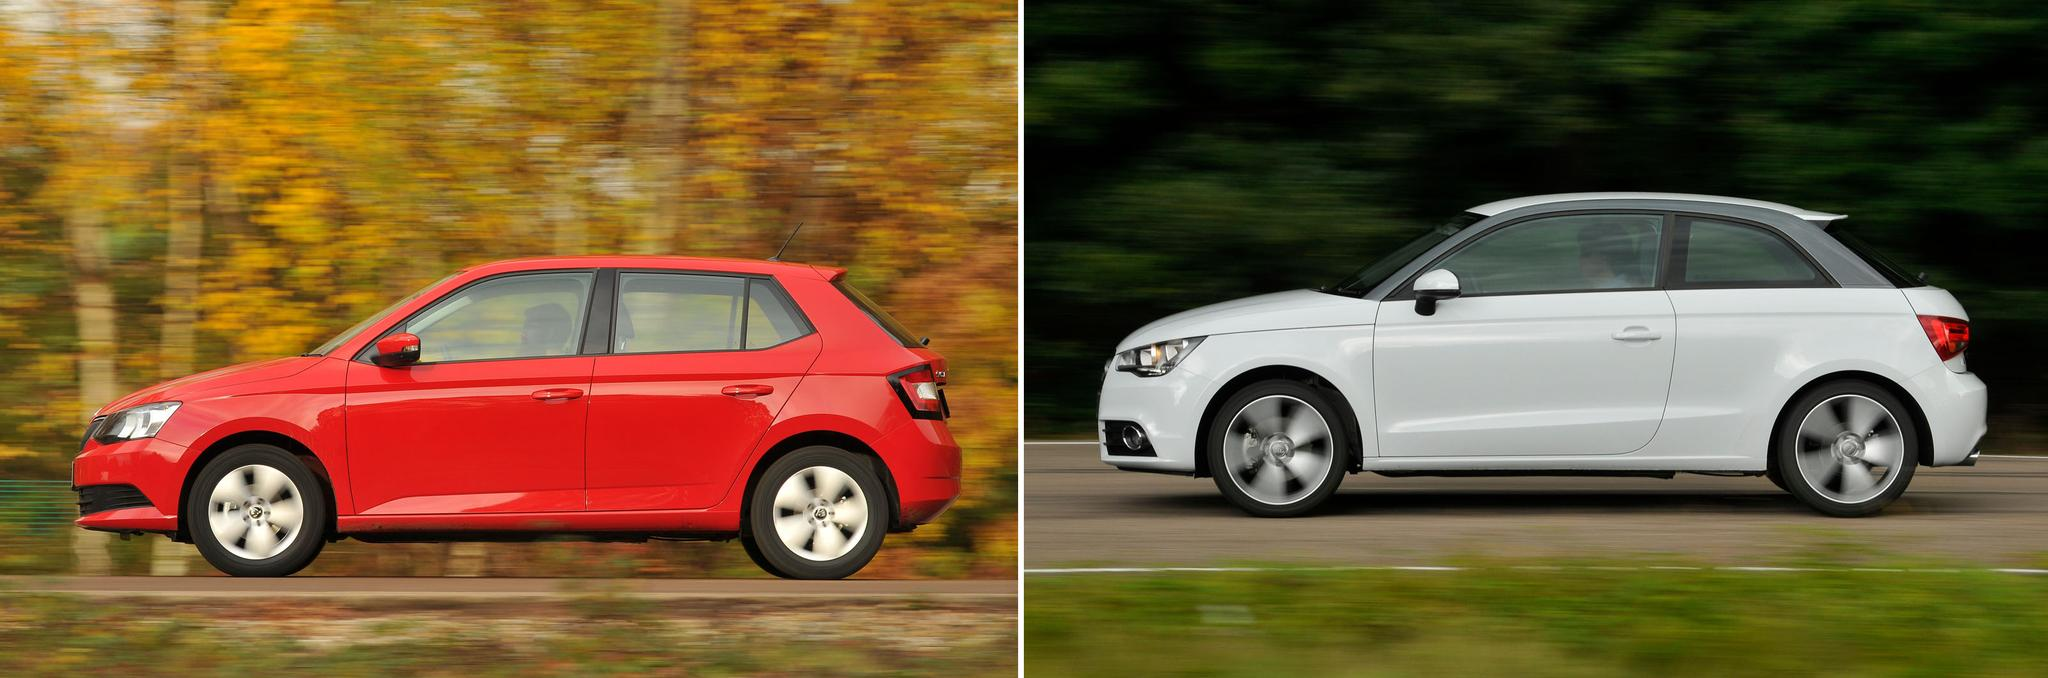 New Skoda Fabia vs used Audi A1: which is best?